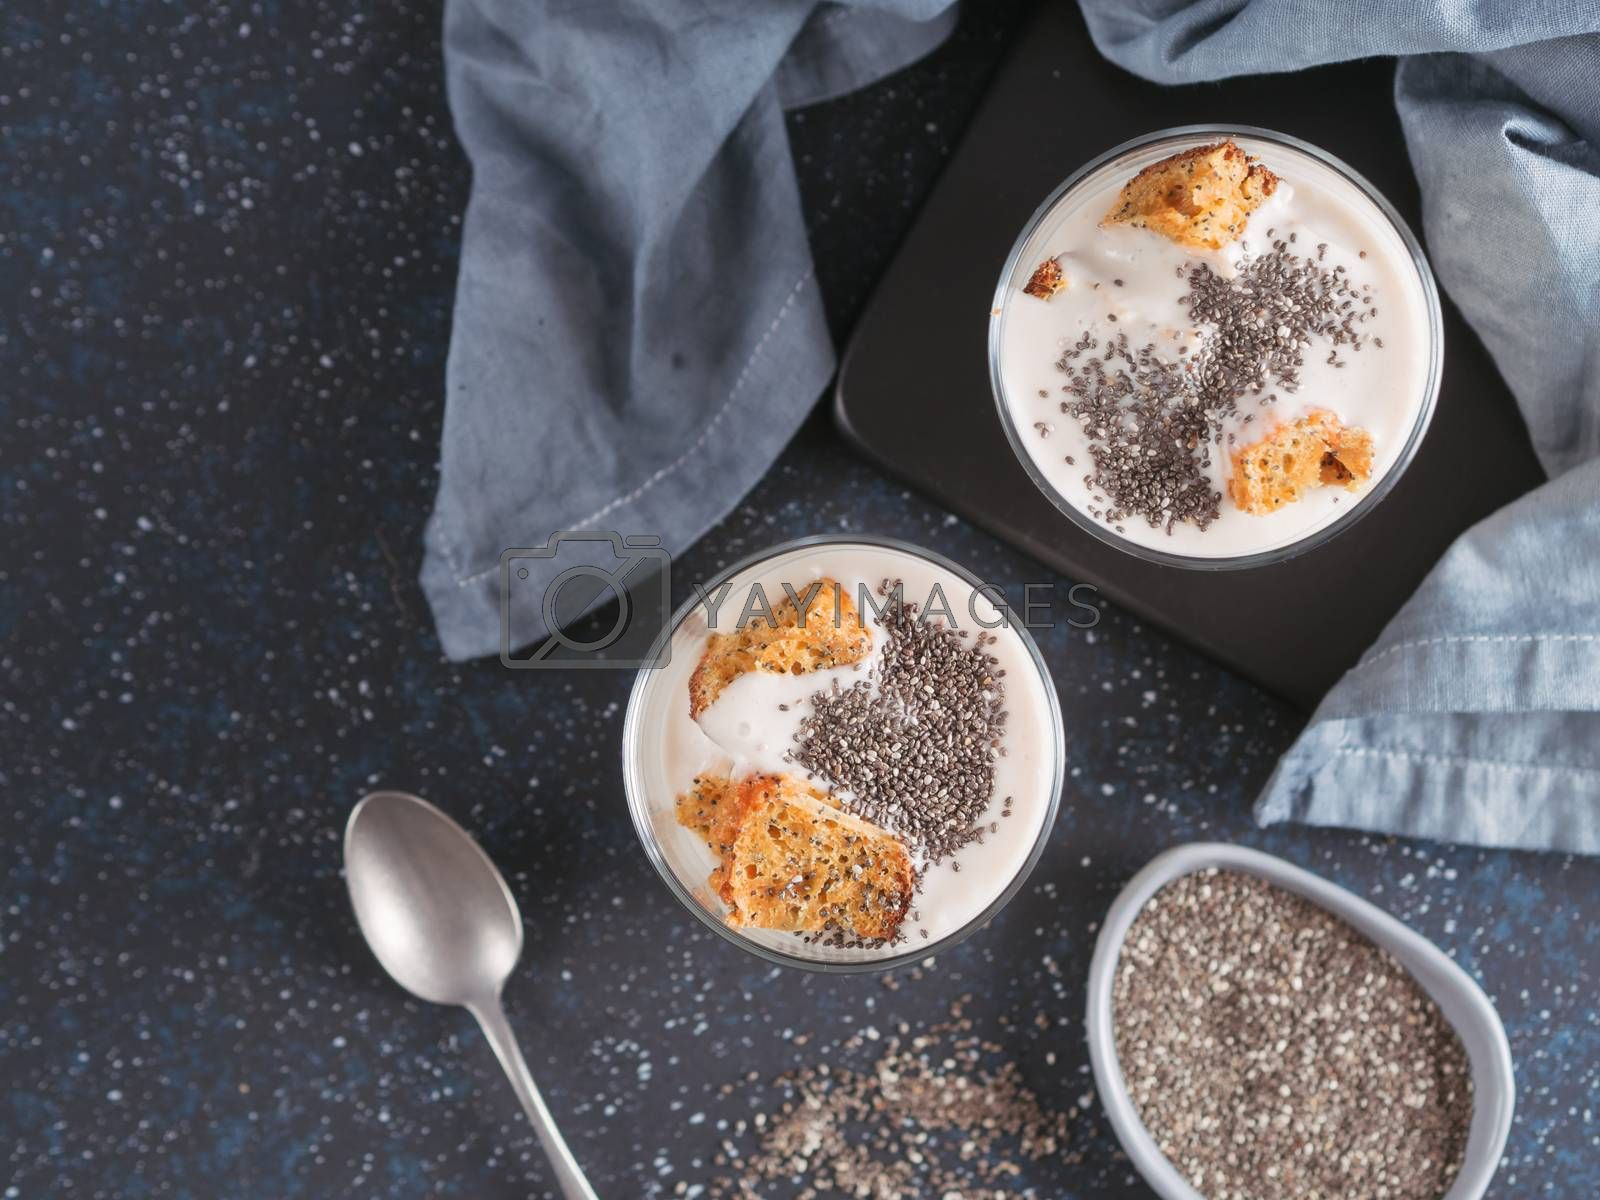 No baked cheesecake dessert with crushed carrots biscuits and chia seeds in glass jar on dark background. Ideas and recipes for healthy breakfast. Copy space for text. Top view or flat-lay.